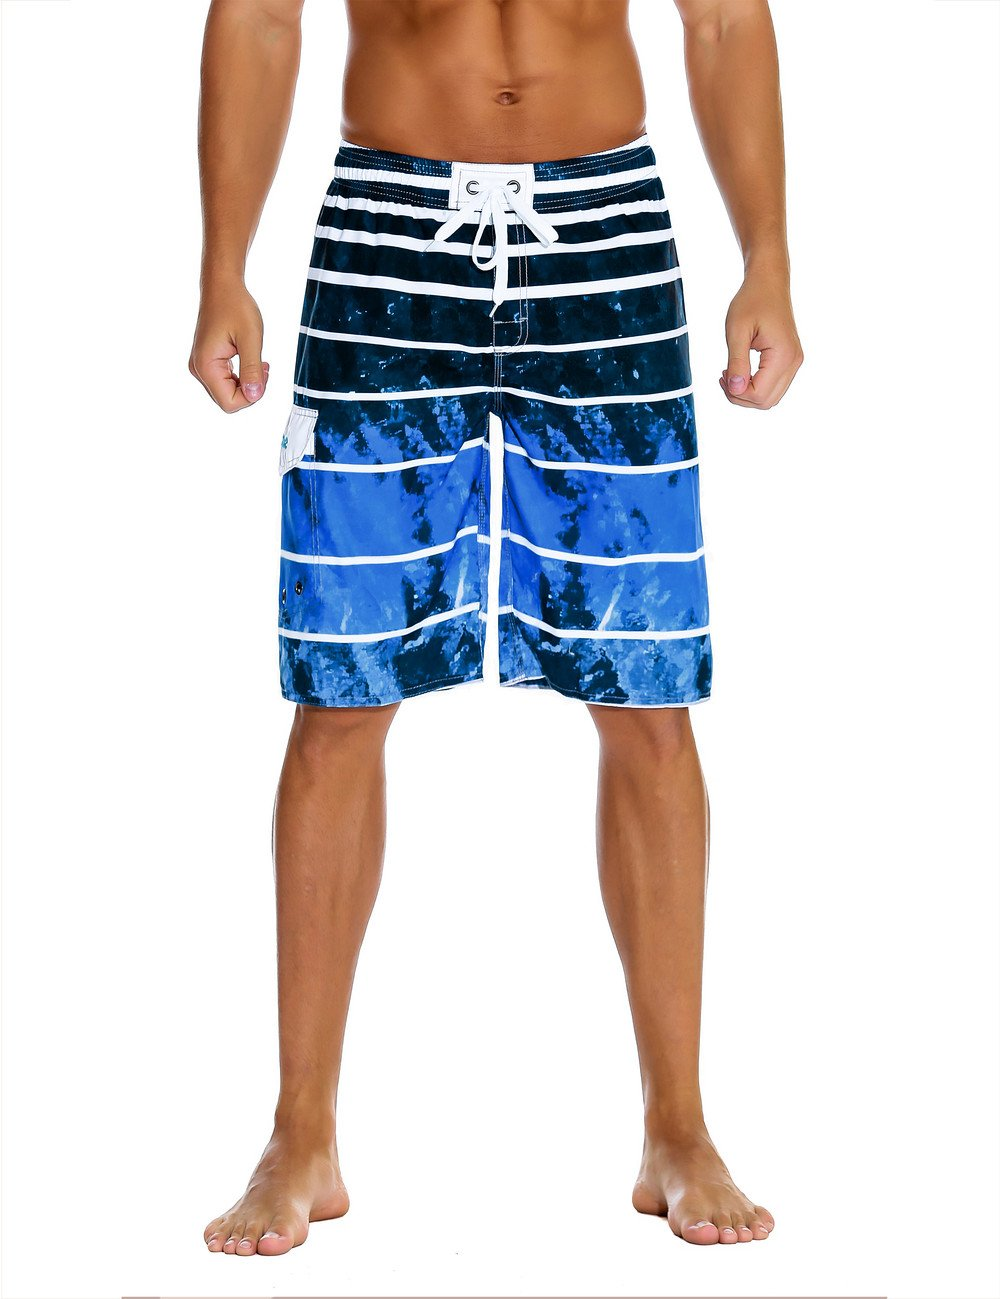 1bbddaddb0 ... Extended Size Trunk Kanu Surf Men's Swimwear 7064X · Nonwe Men's  Beachwear Summer Holiday Swim Trunks Quick Dry Striped JF16143